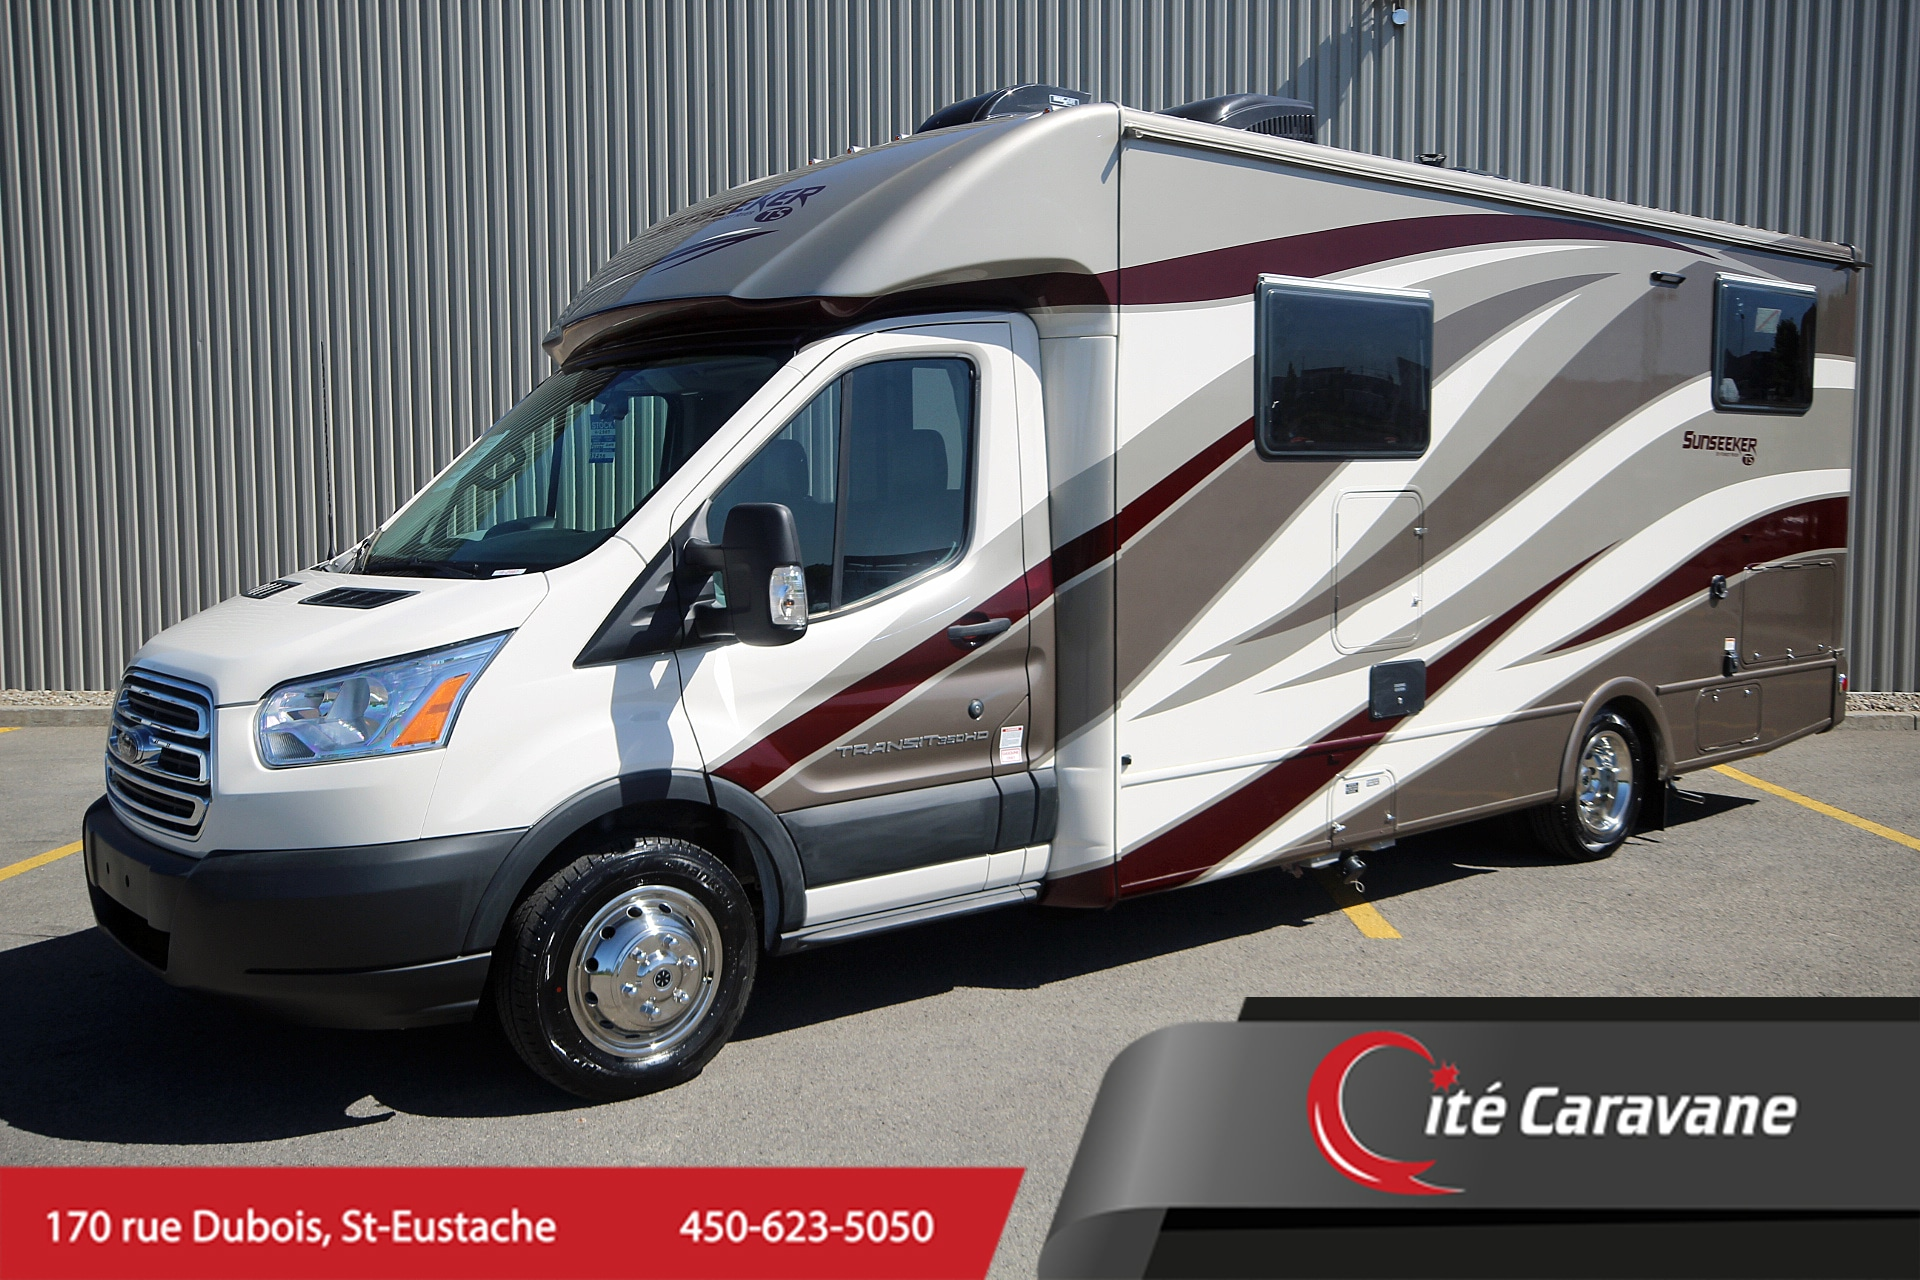 2019 FOREST RIVER SUNSEEKER 2380 TS TRANSIT FORD NEUF 2380 NOUVEAU MODÈLE + FULL PAINT !! CLASSE B/B+